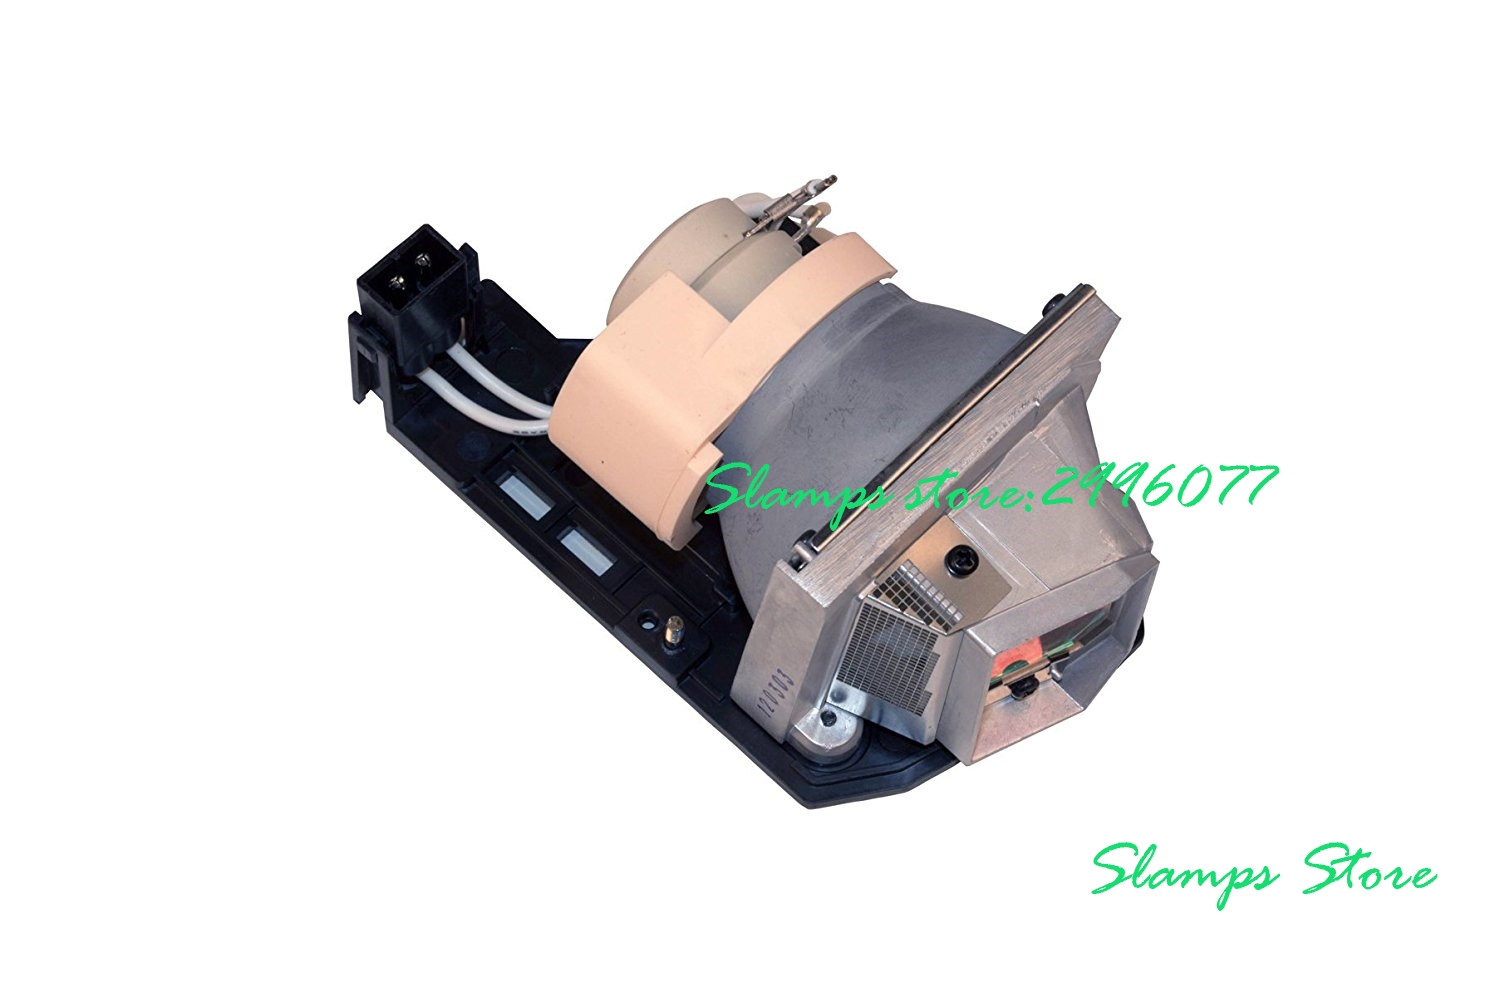 BL-FP230J/SP.8MQ01GC01 Projector lamp With Housing for OPTOMA HD20(Q8NJ)/HD20-LV (Q8NJ)/DH1010/EH1020/EX612/EX615/GT750/GT750-XL